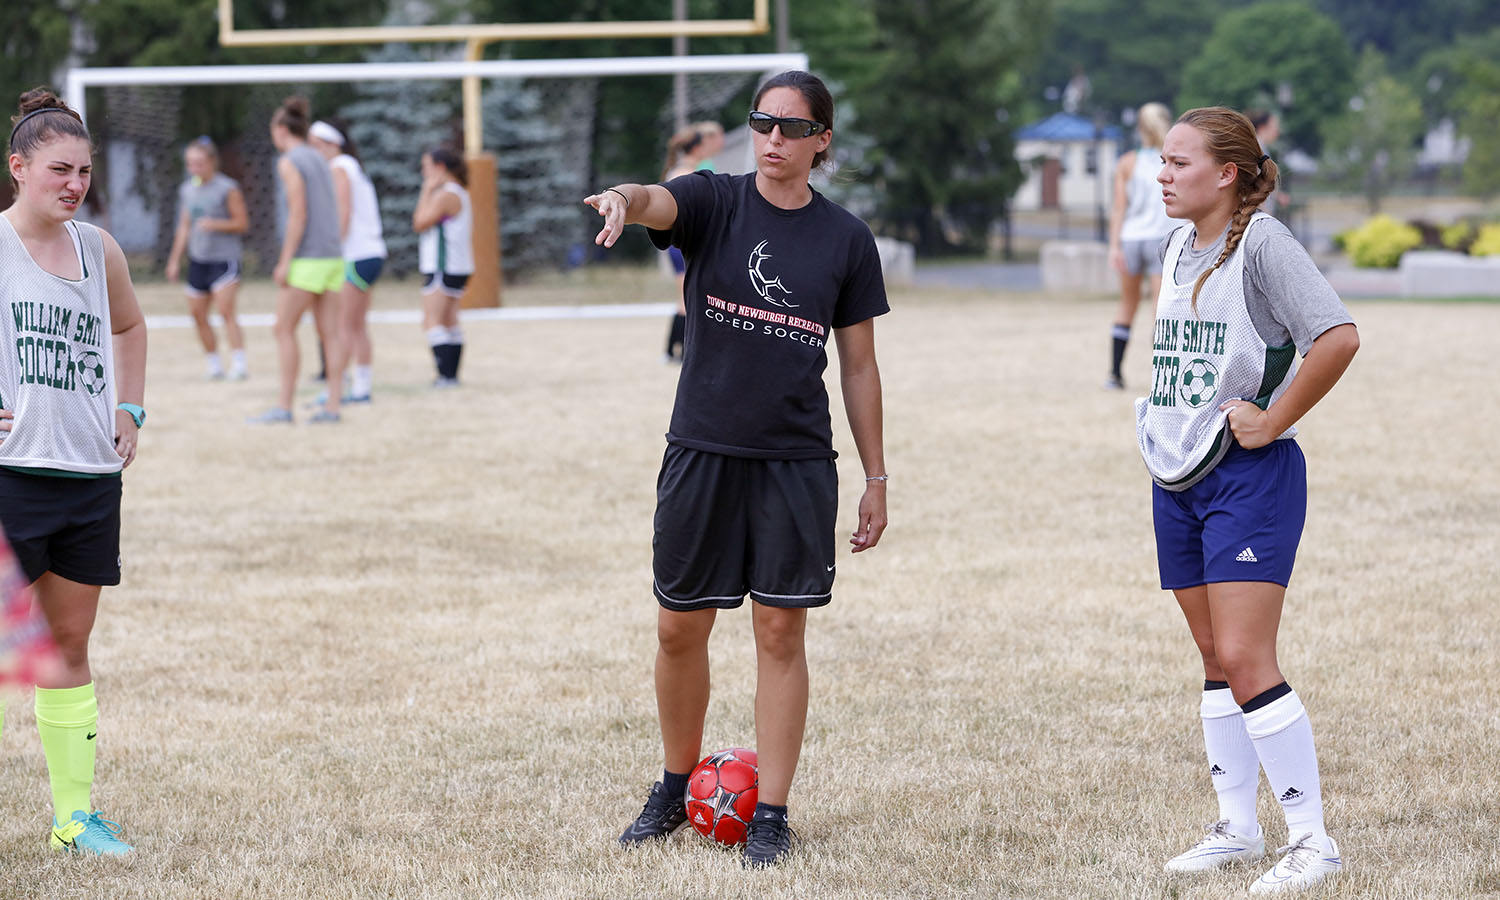 BreLynn Nasypany '11 explains a drill to campers during last week's Heron soccer camp. Nasypany, who was recently named the head coach for RPI's women's soccer team,  will be one of eight Herons inducted into the Heron Hall of Honor on October 15.